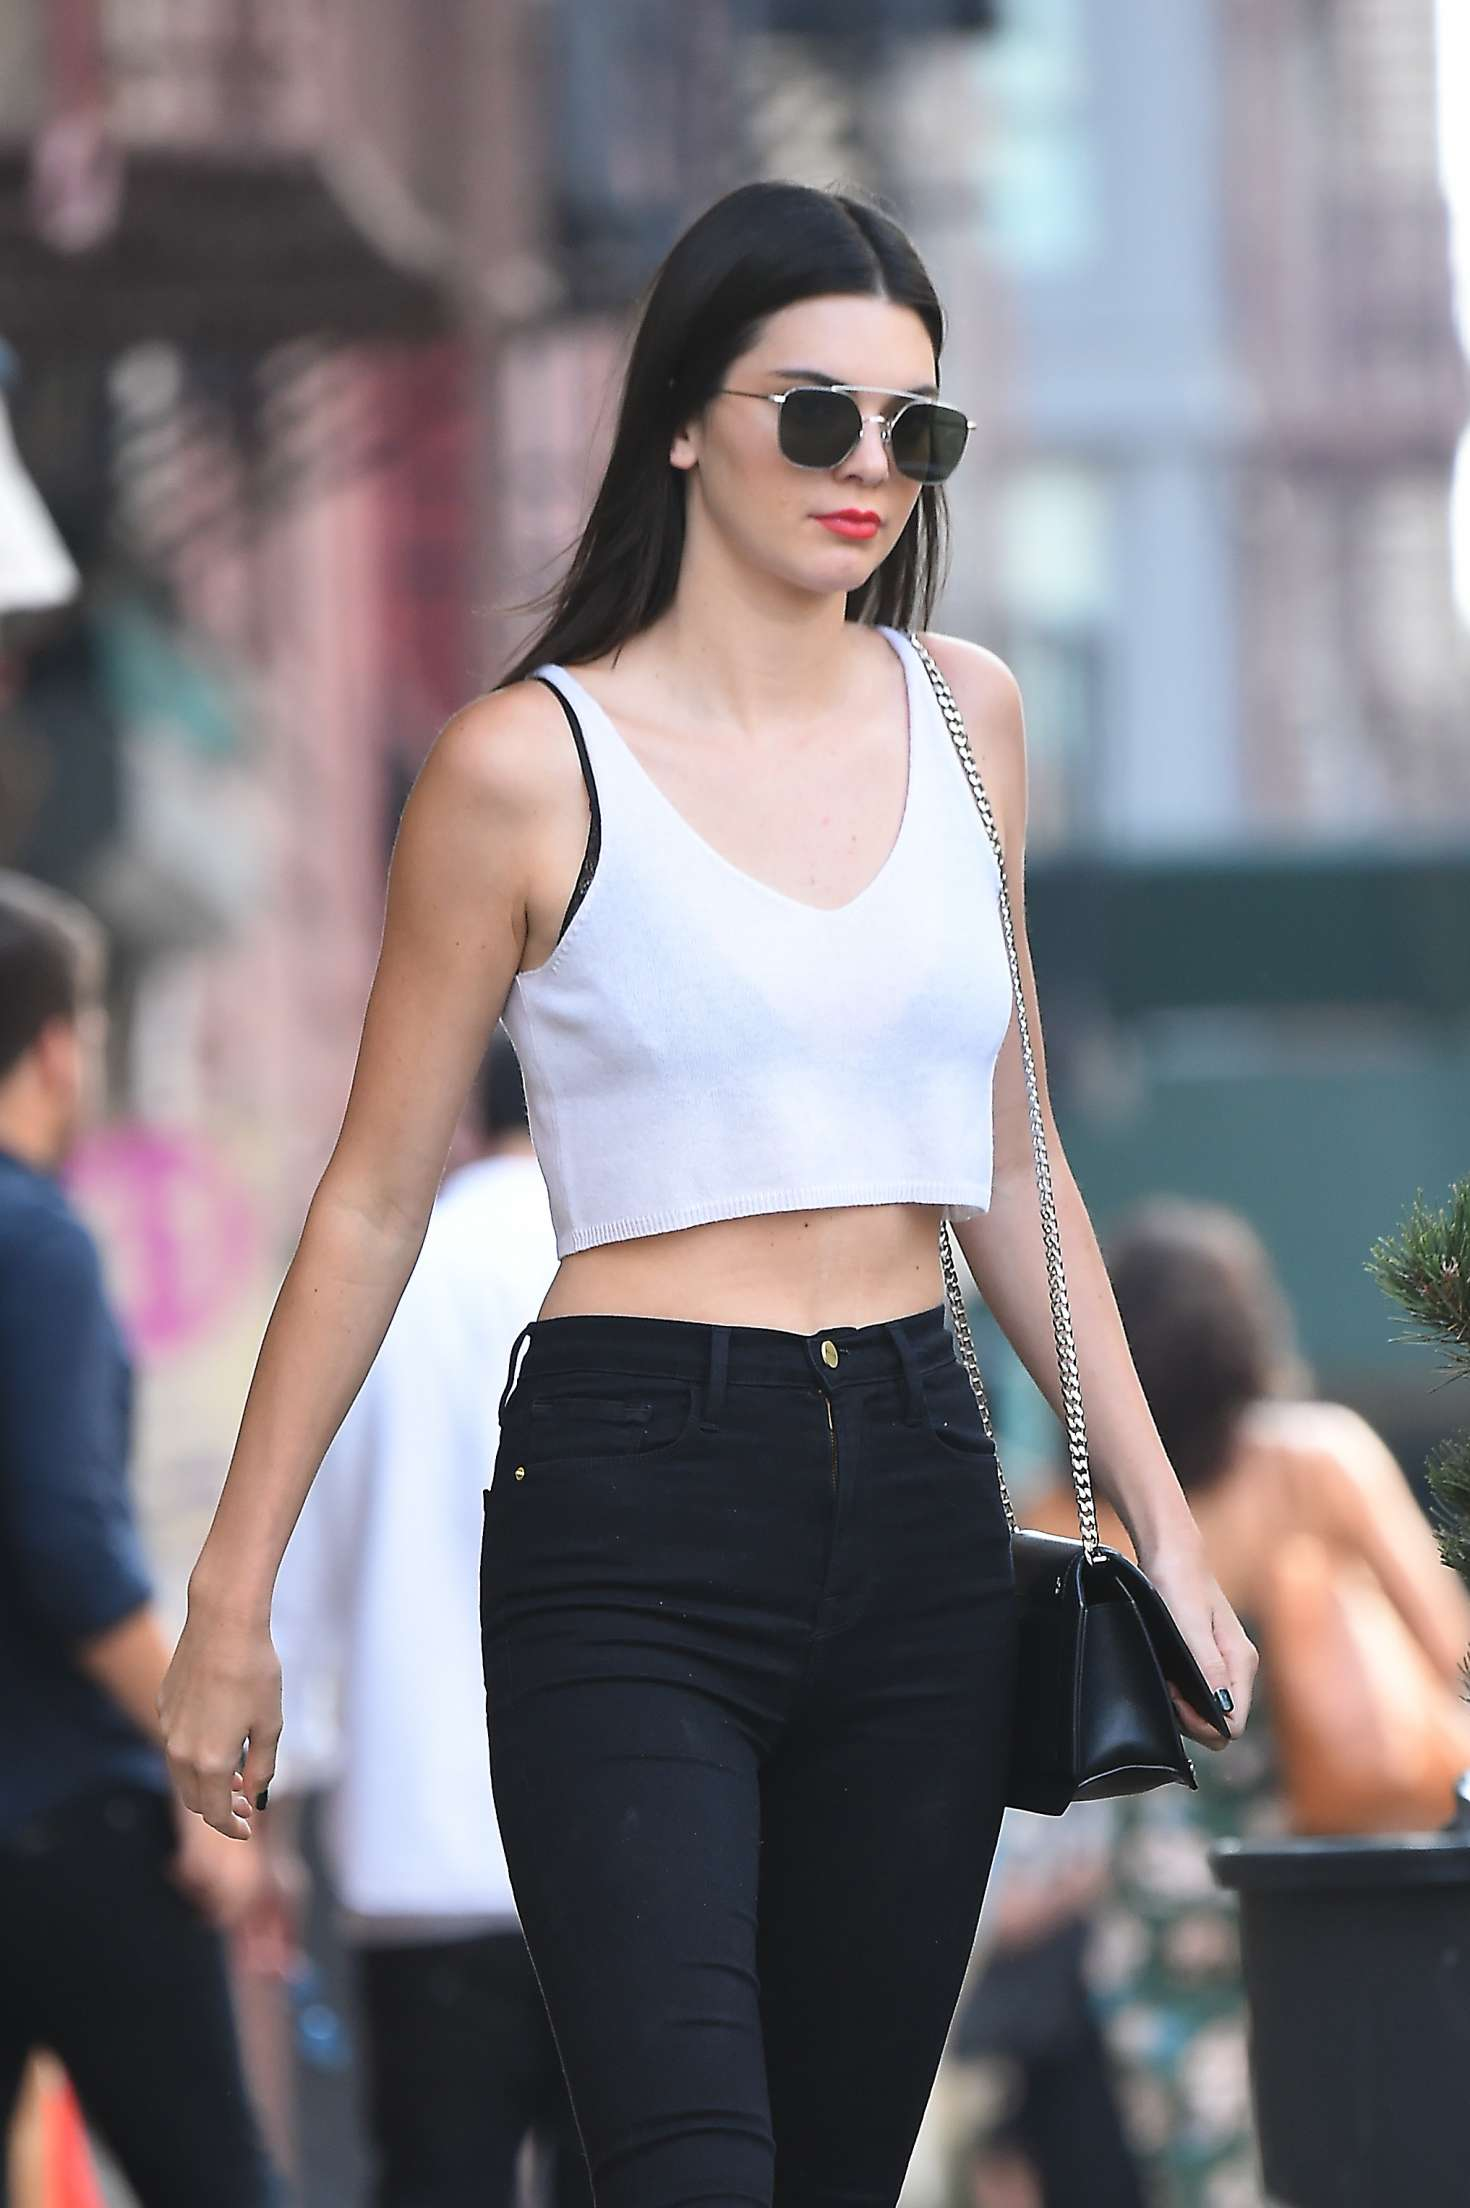 Images Hailee Steinfeld >> Kendall Jenner Booty in Black Jeans -08 - GotCeleb